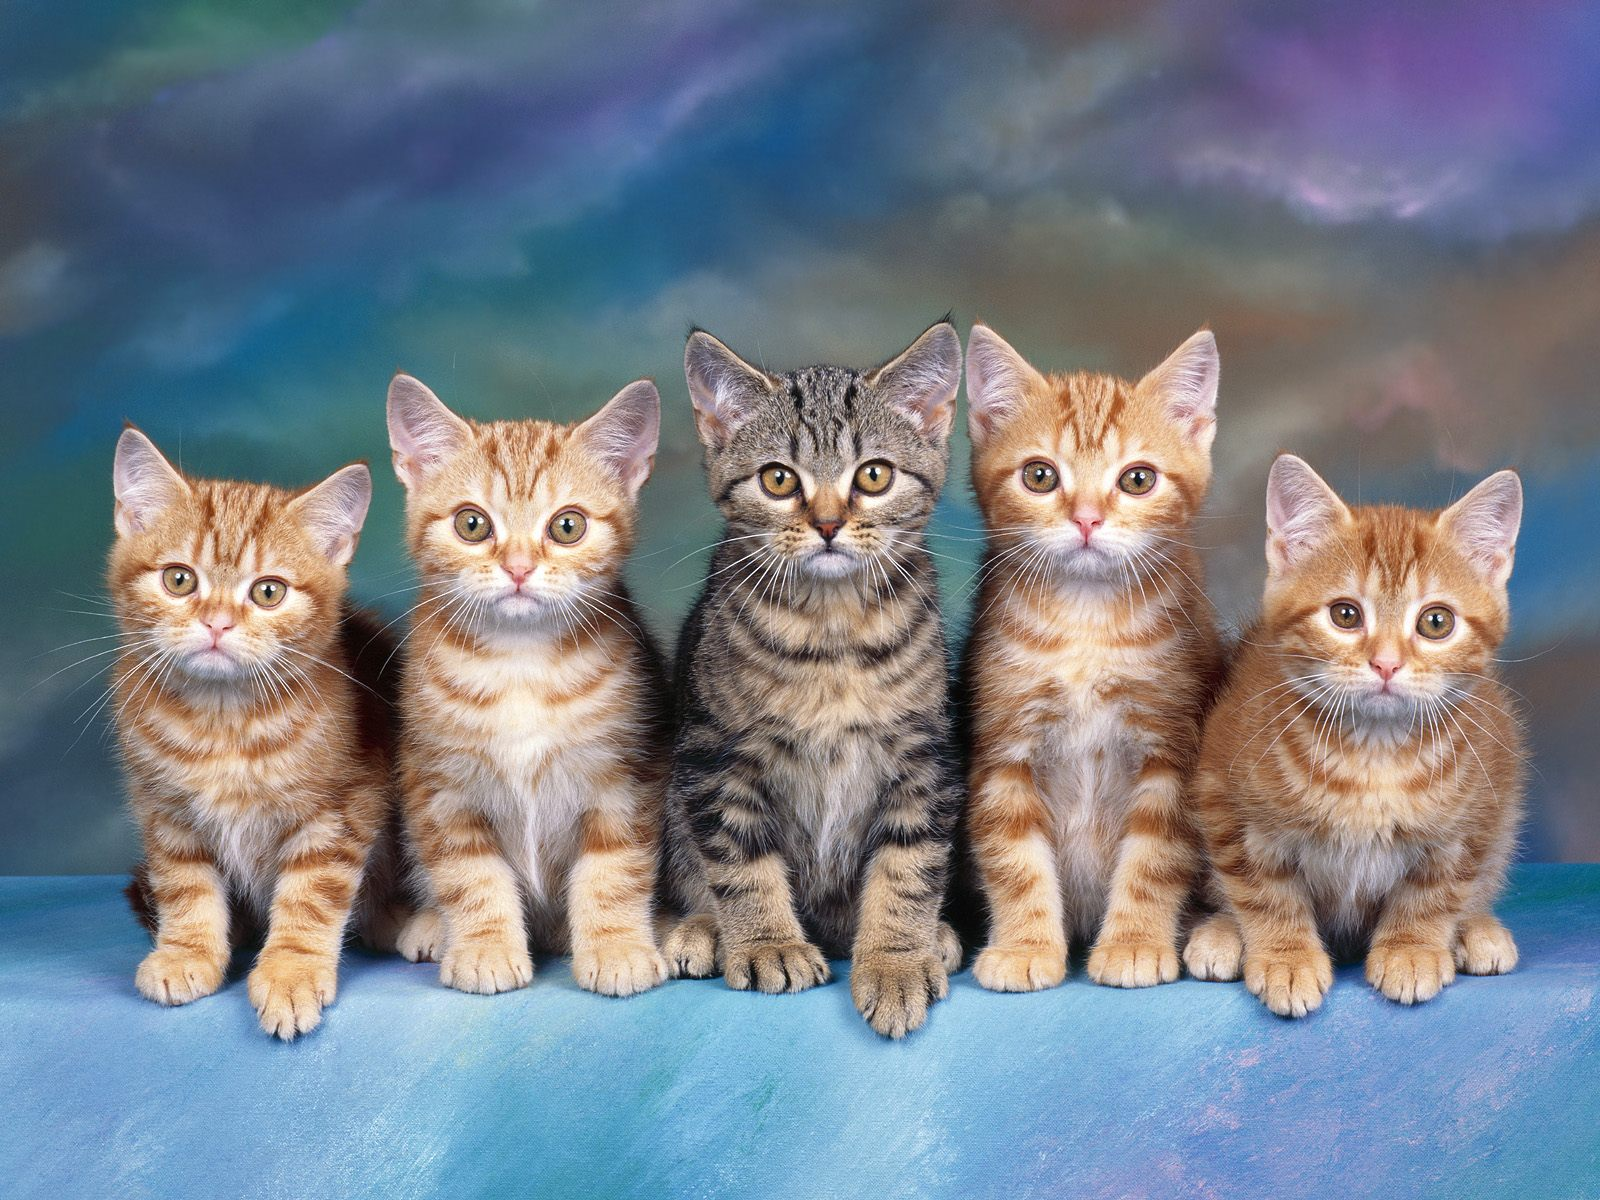 Tabby Kittens   Animals Wallpaper Image with Cats 1600x1200